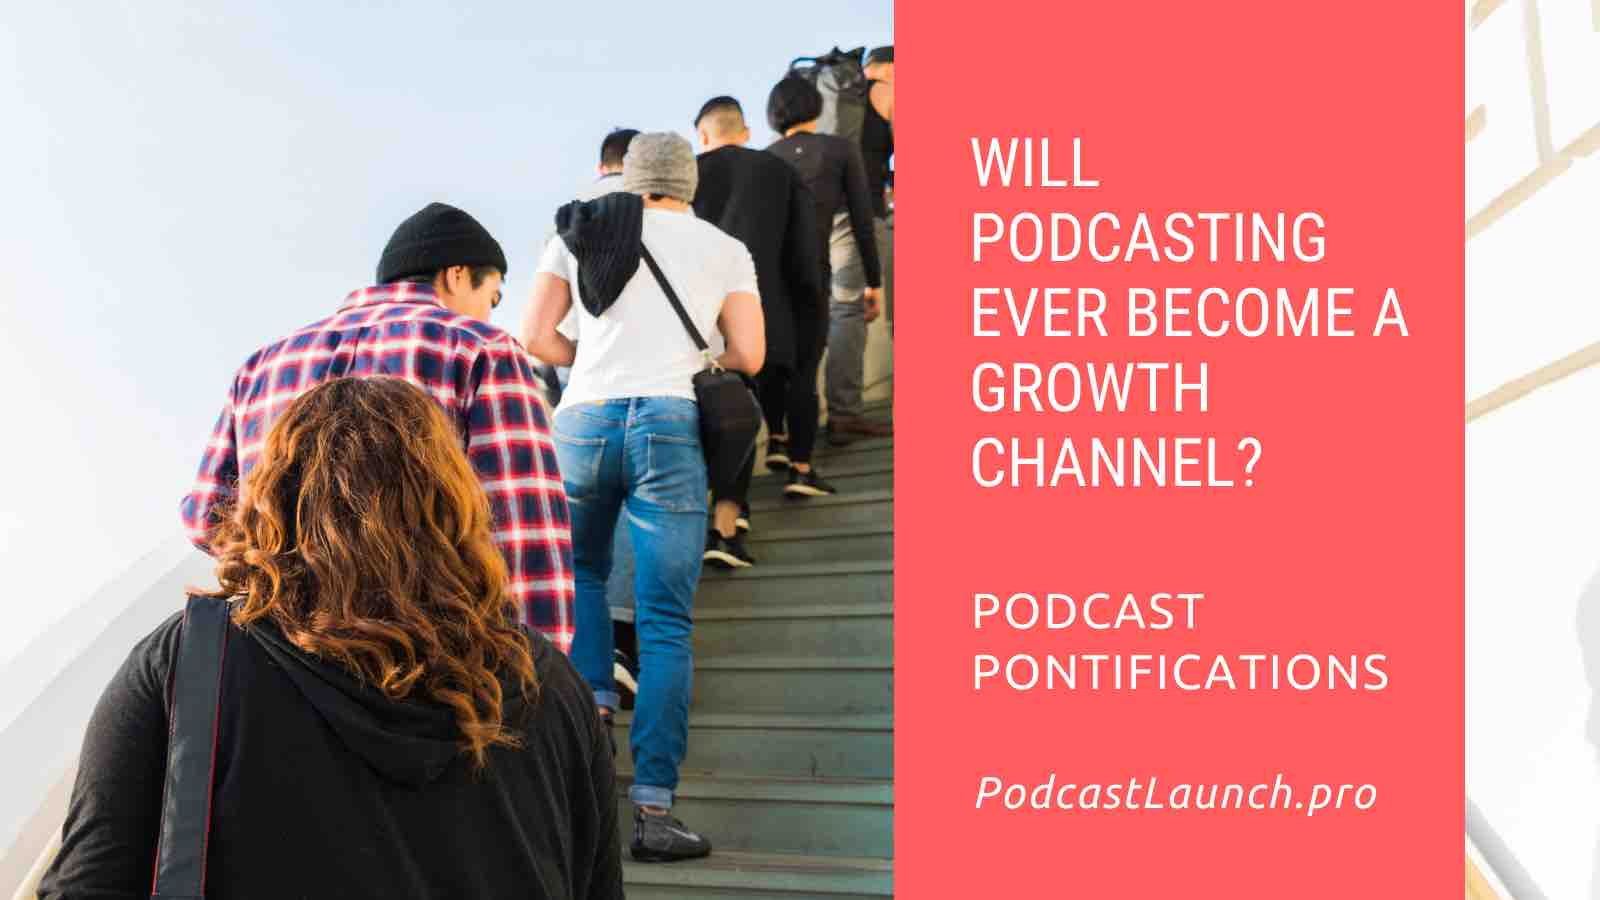 Will Podcasting Ever Become A Growth Channel?